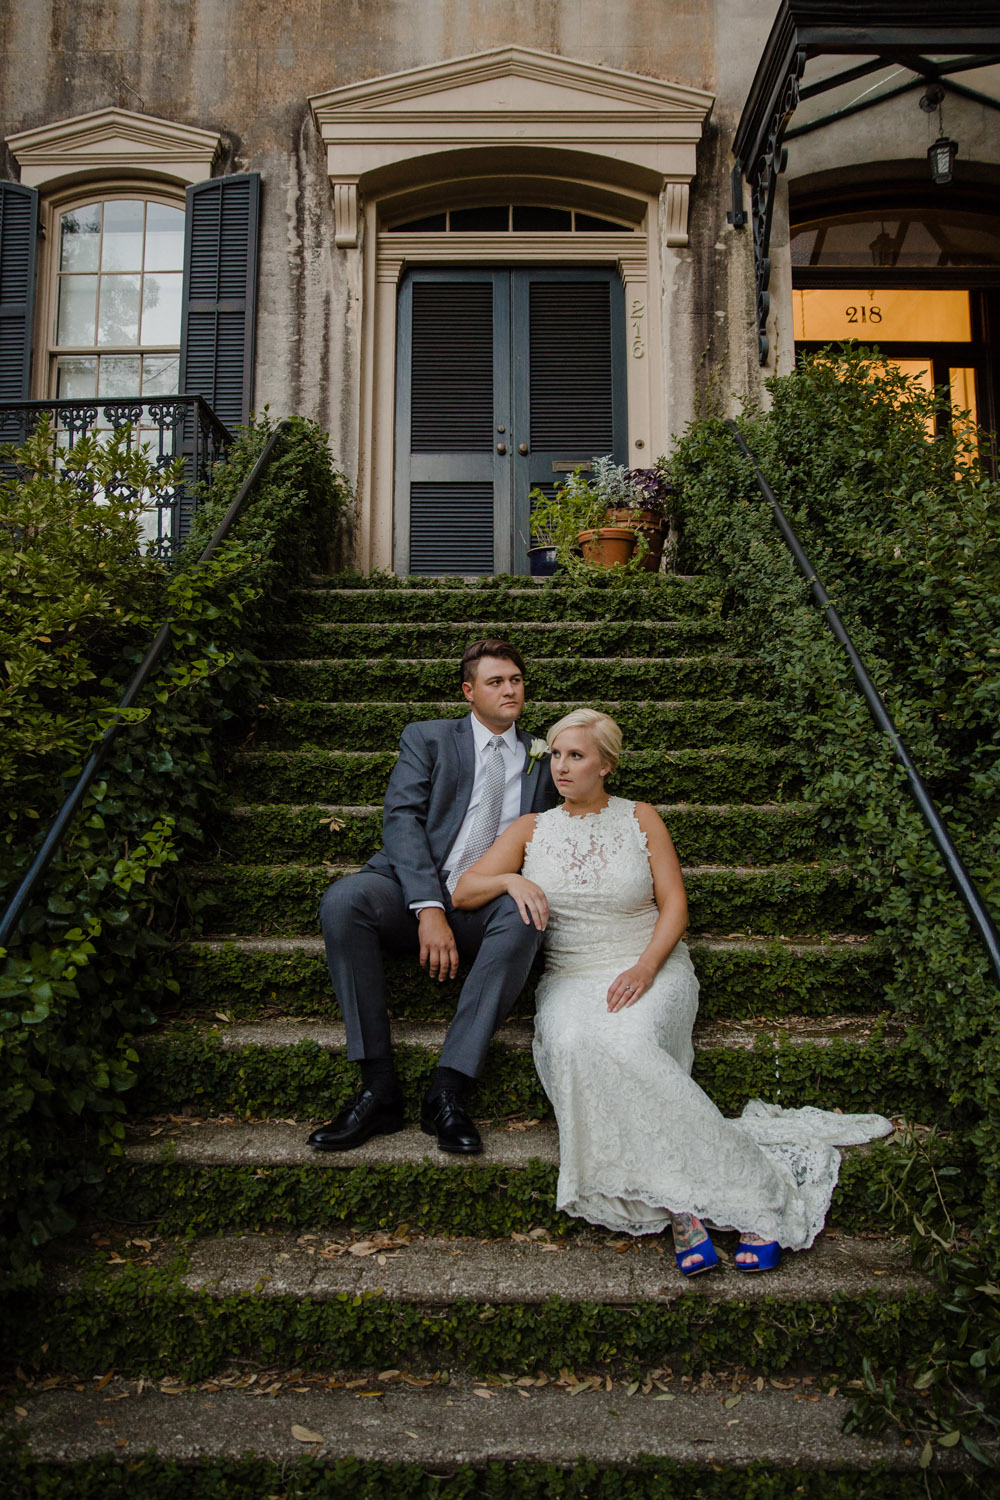 Atlanta Wedding Photographers Savannah Elopement Photographer Destination Photography_1047.jpg